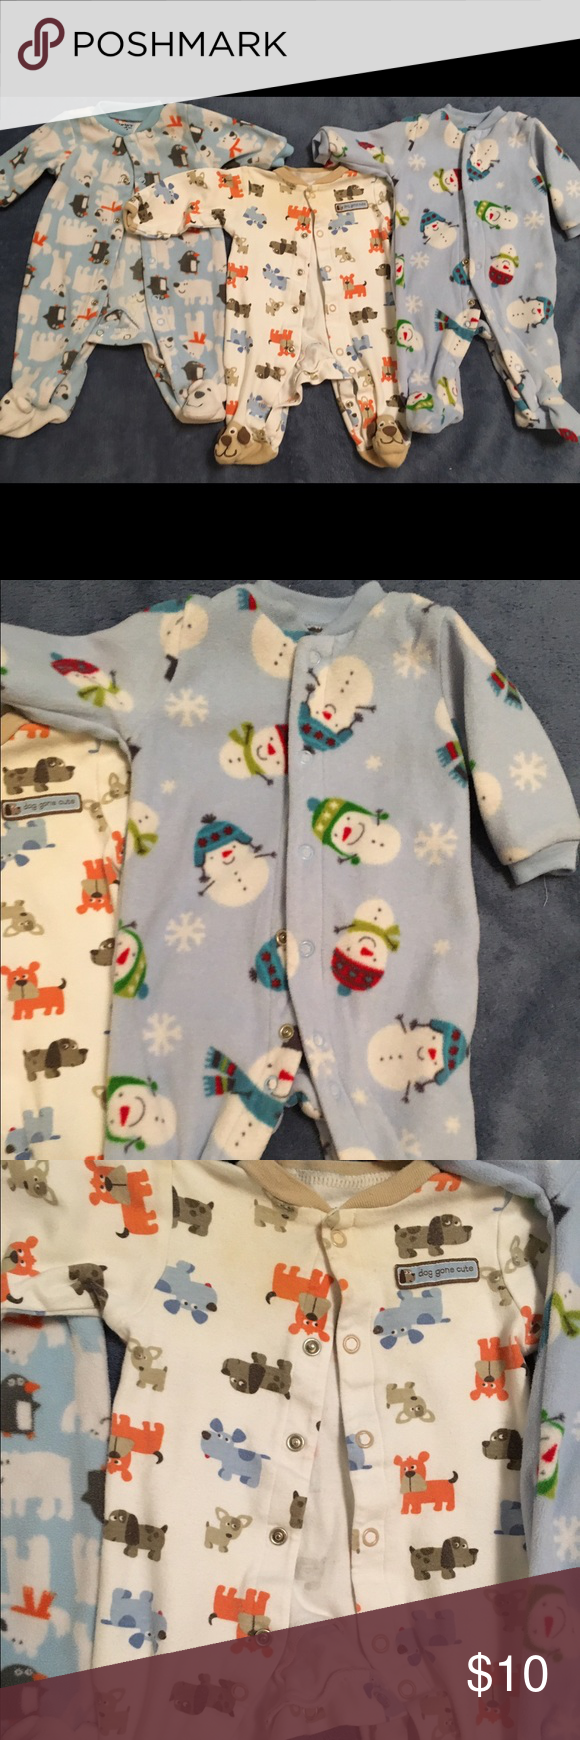 Warm footed pjs bundle, newborn-3 months Used but still in great condition. The middle pair has some slight discoloration at the top (see pic). If you don't want all 3, let me me know which ones you do want and I can reduce the price for you :) One Pieces Footies